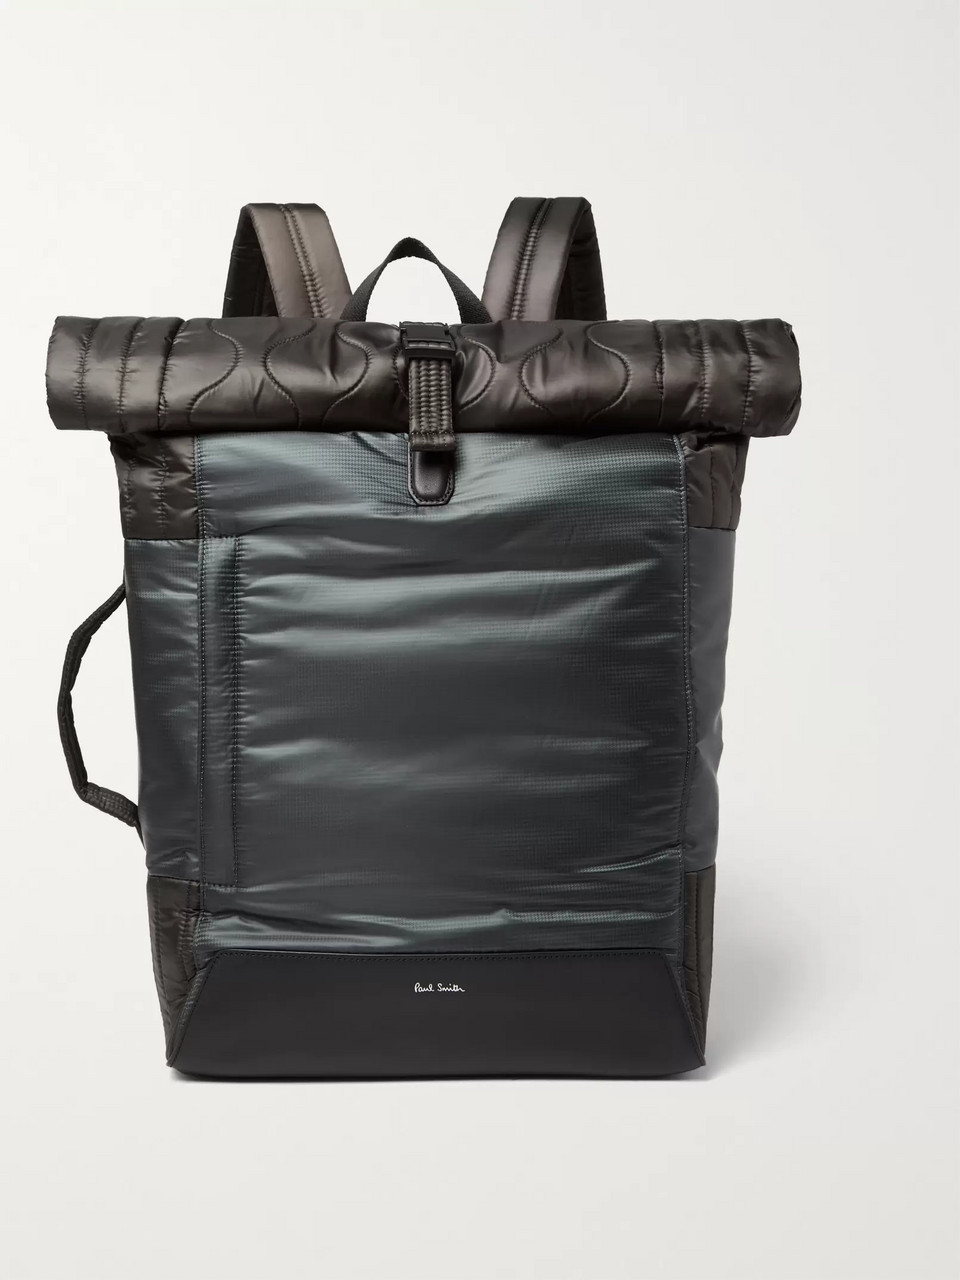 Paul Smith Quilted Nylon and Leather Backpack